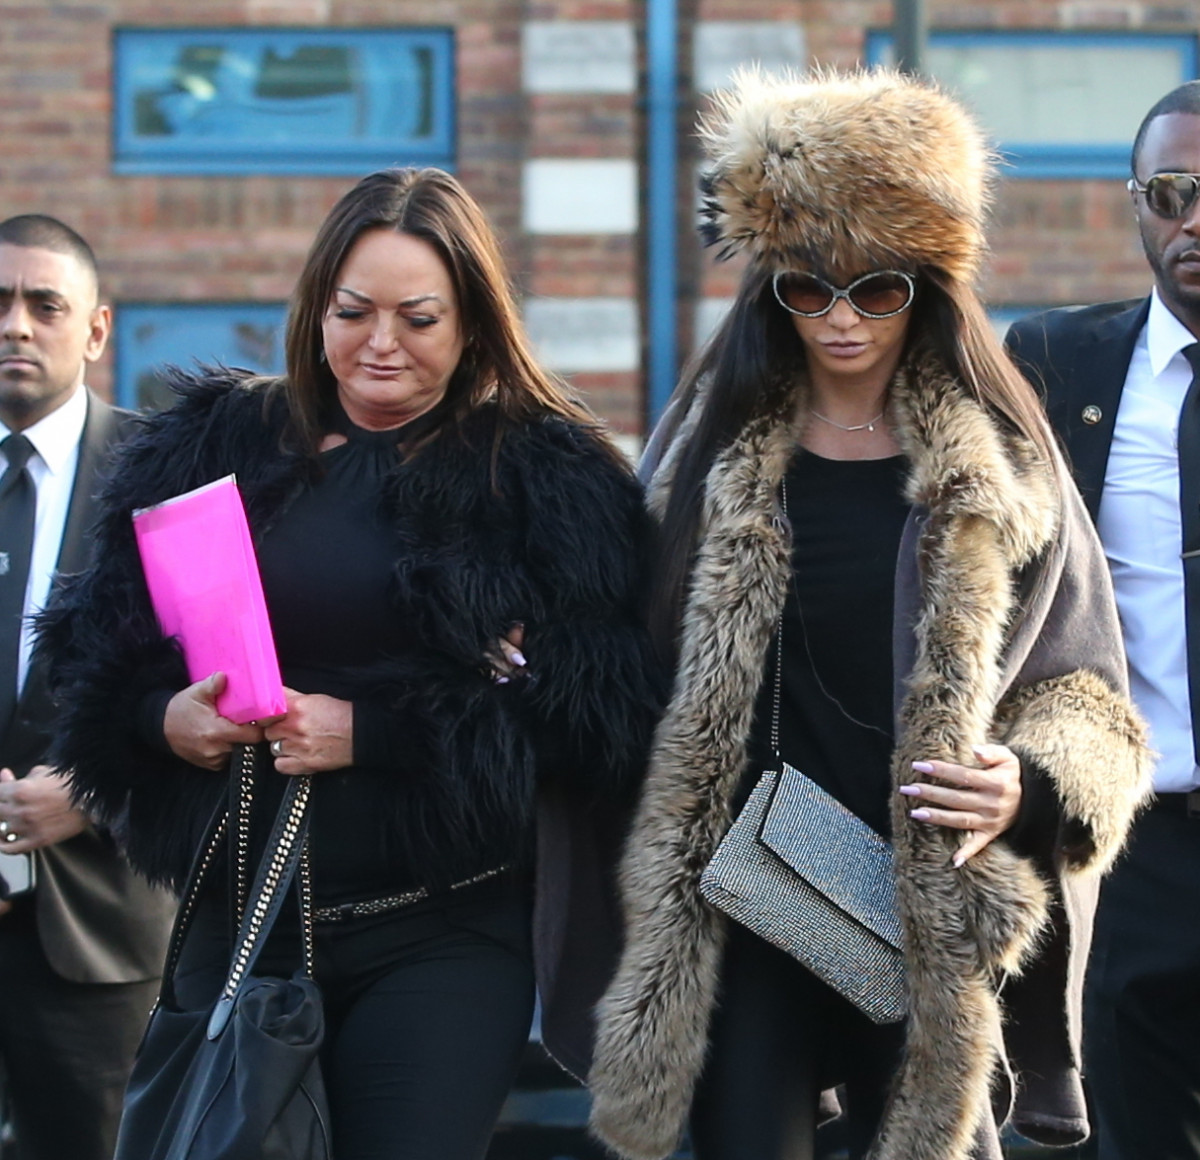 Katie Price pleads guilty to driving while disqualified and without insurance